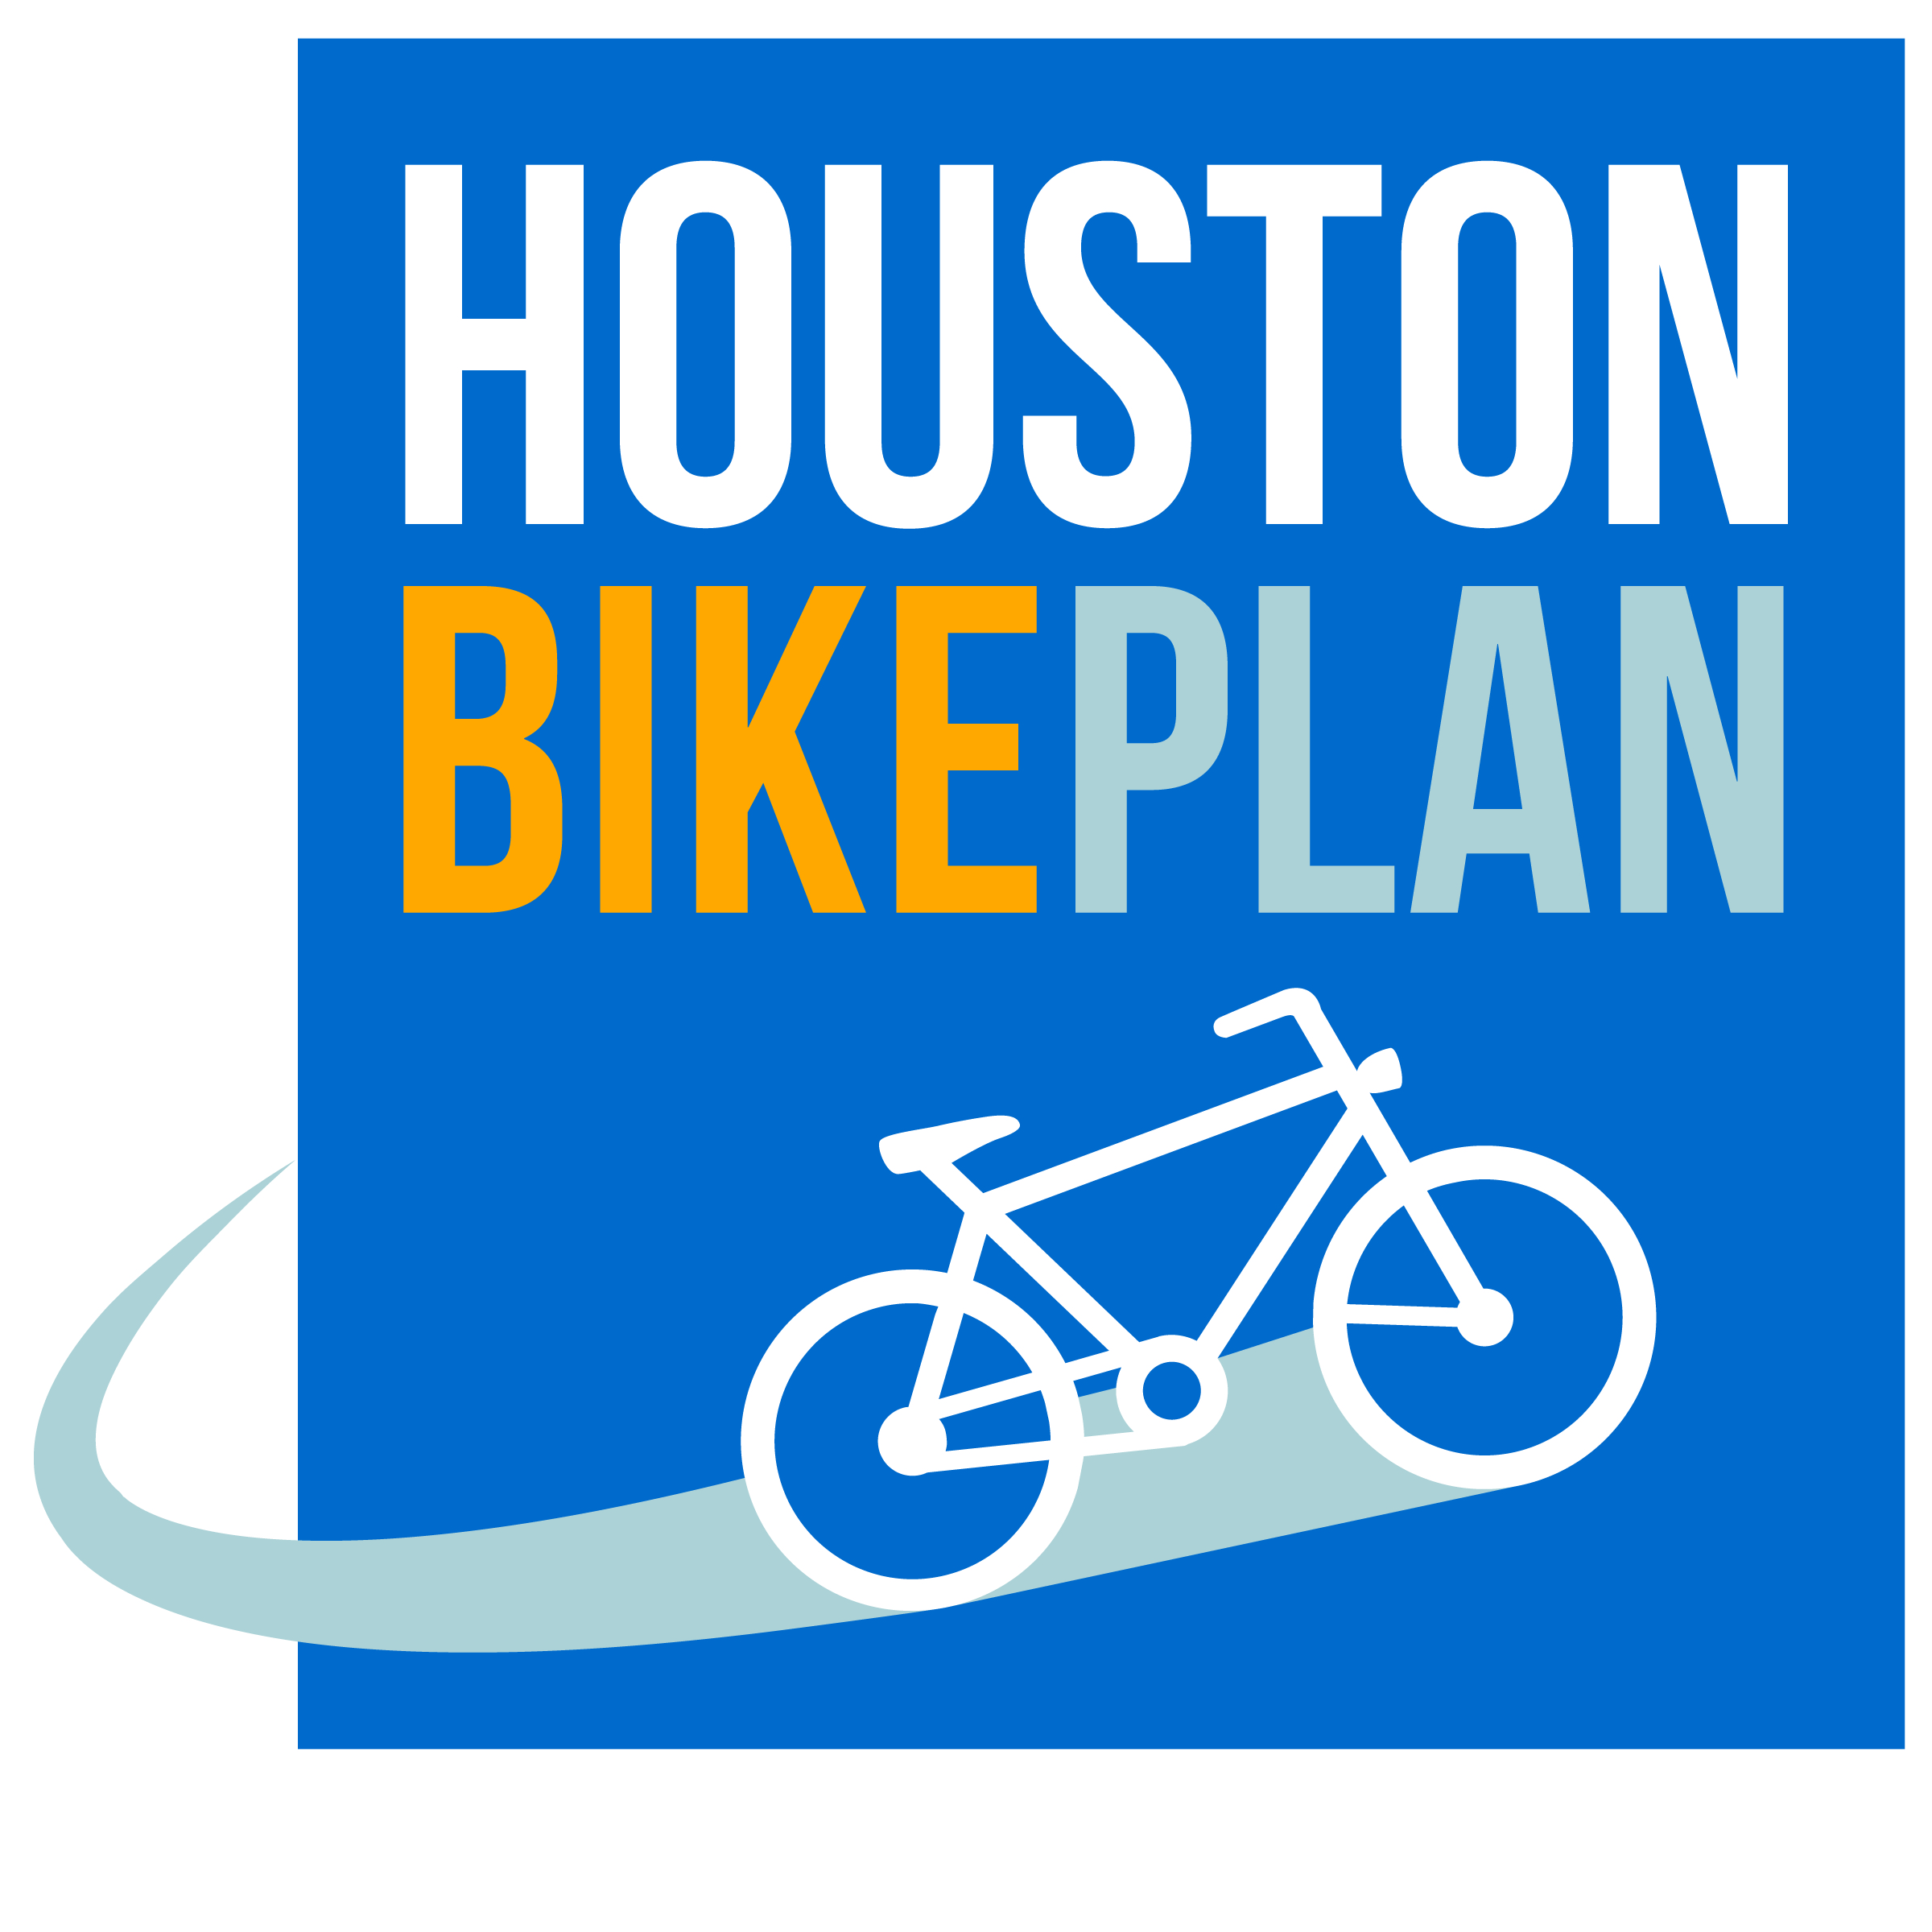 Houston Bike Plan